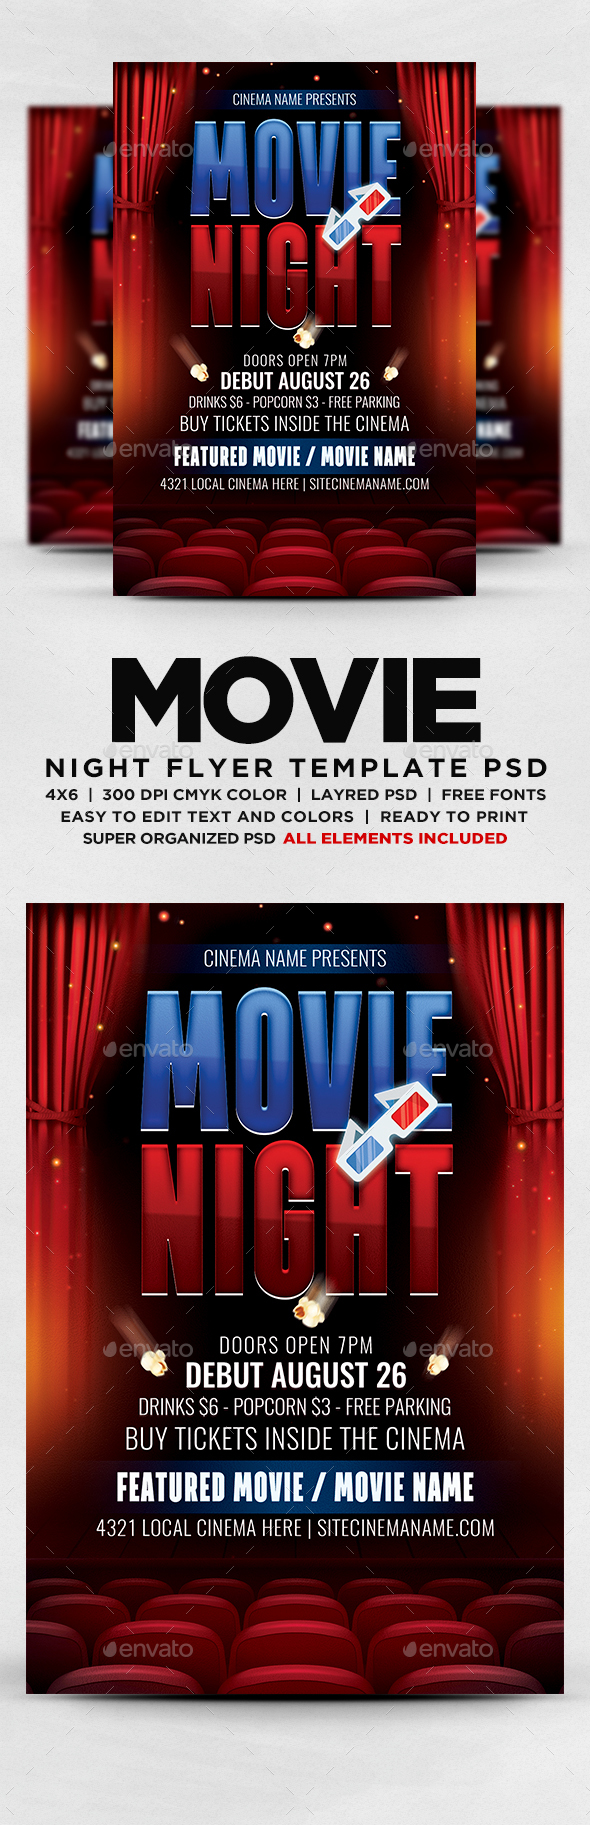 50S Graphics Designs Templates from GraphicRiver – Movie Night Flyer Template